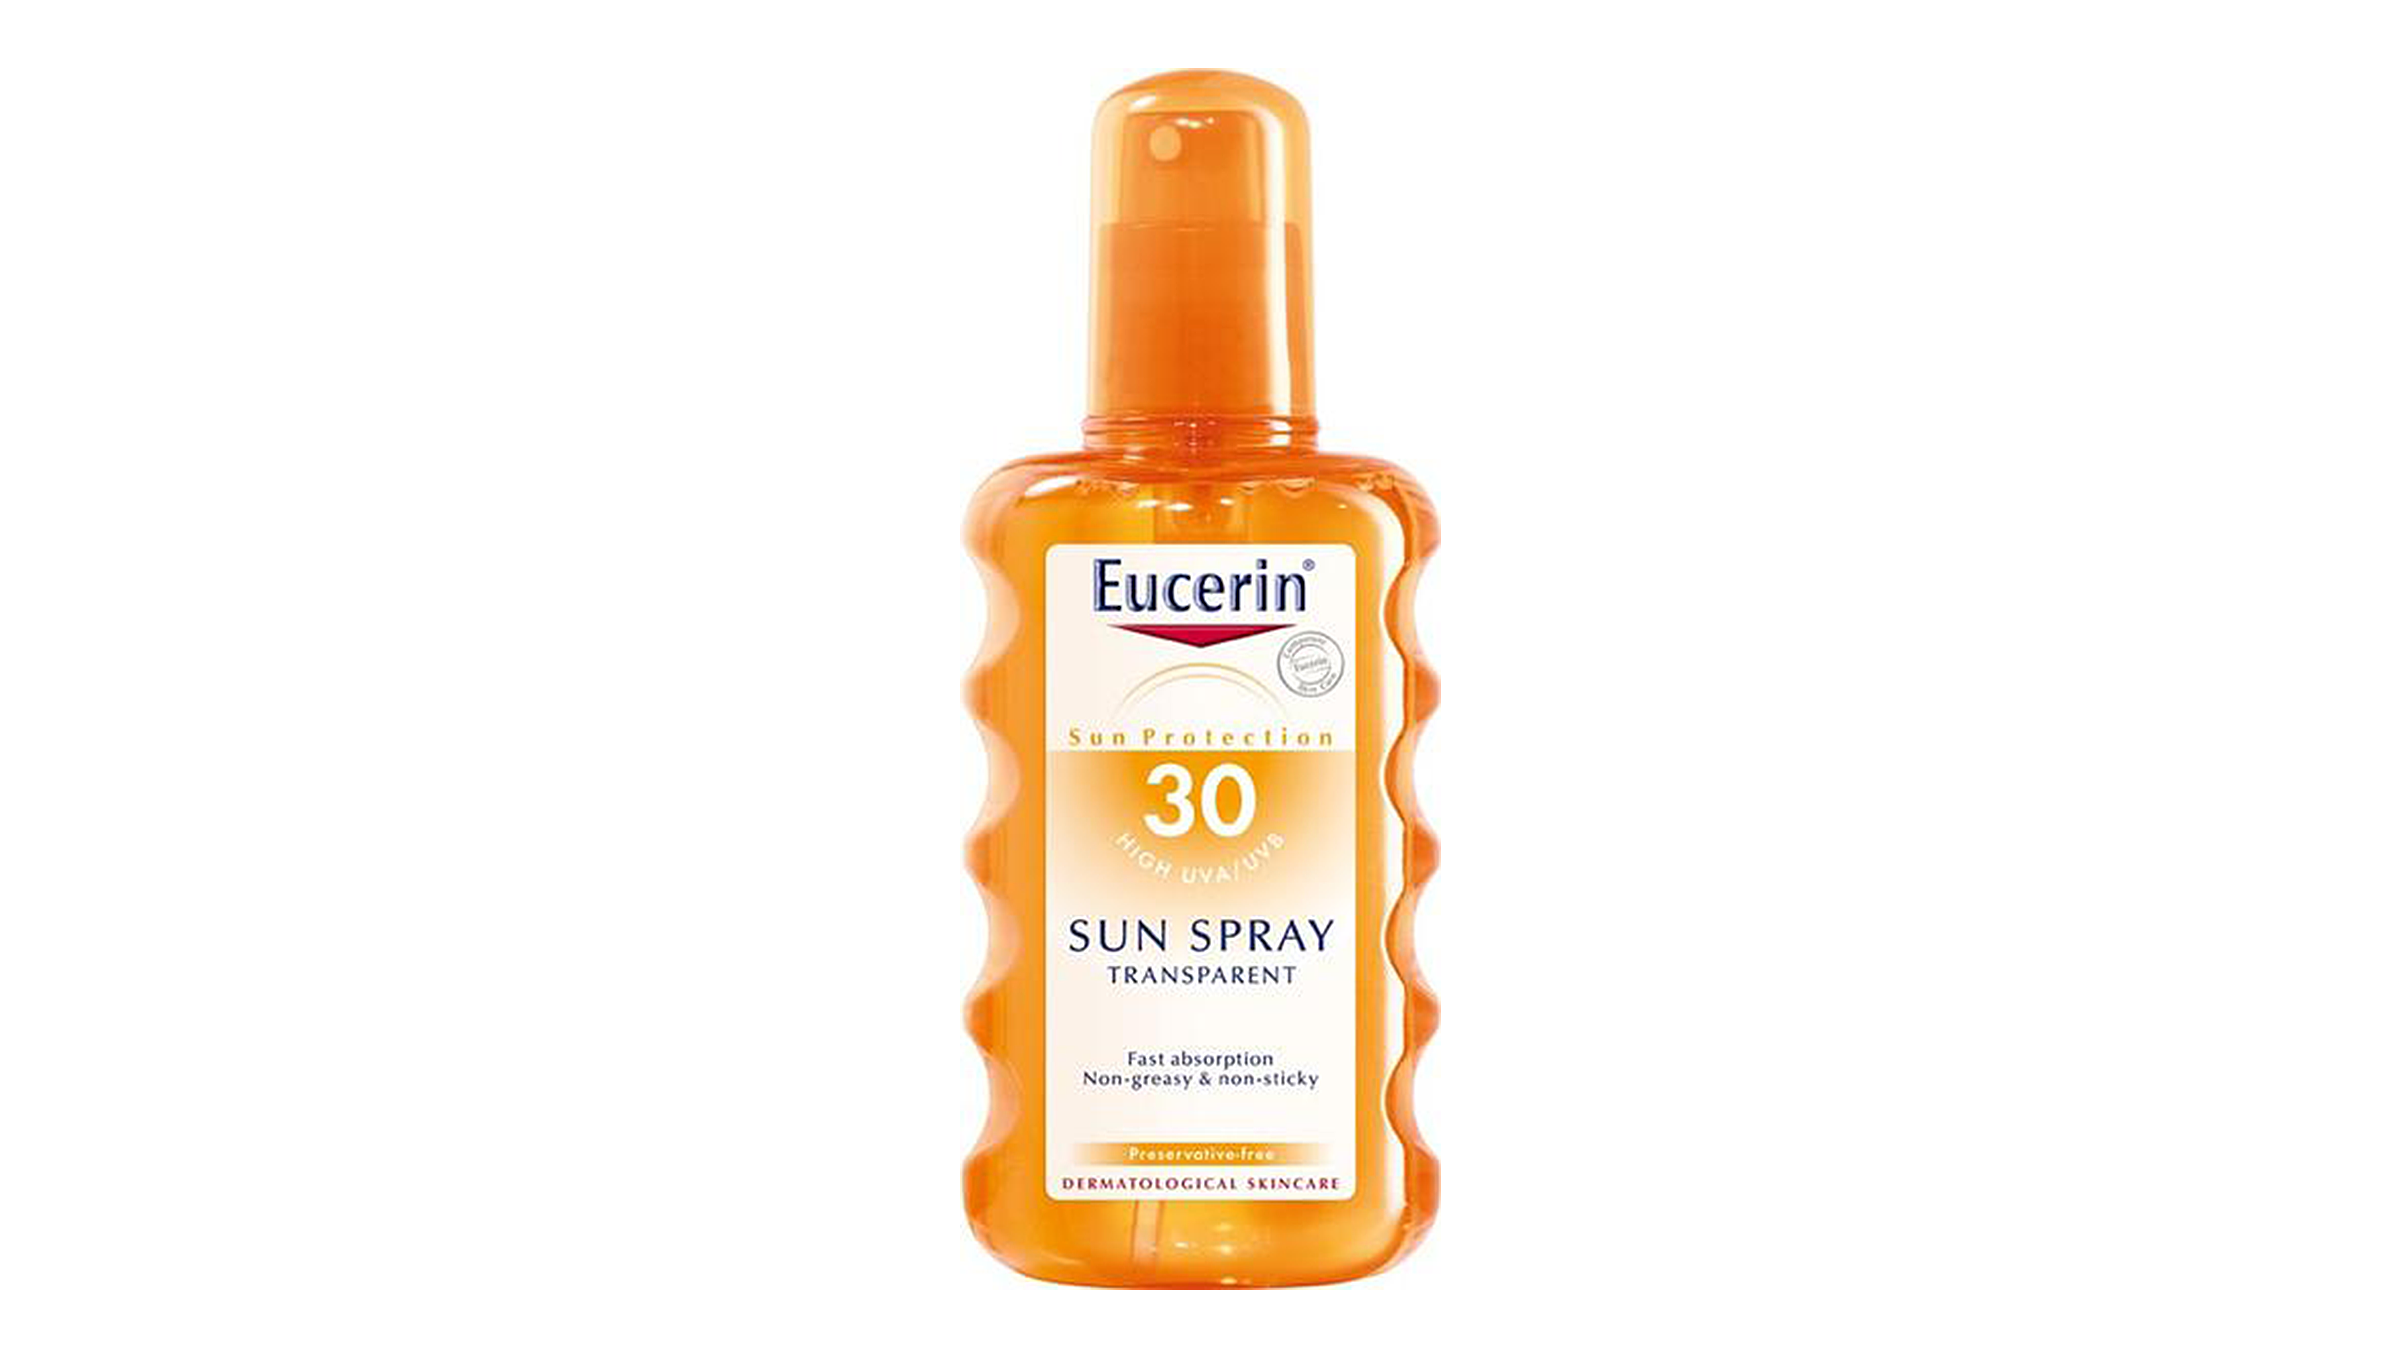 Eucerine Transparent Sun Spray